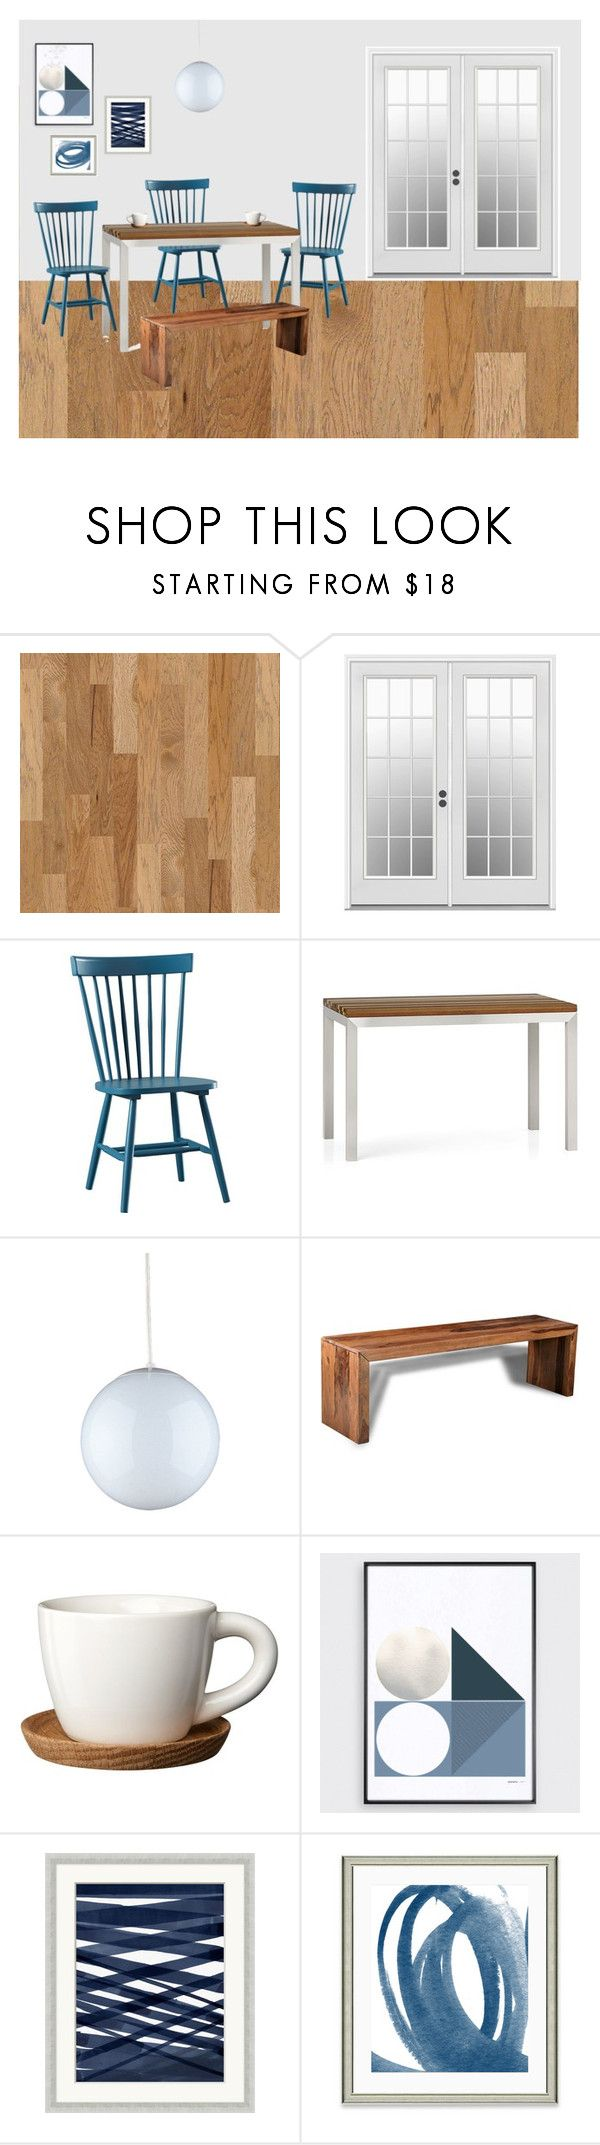 """Jill's Kitchenette"" by theabstractlife ❤ liked on Polyvore featuring interior, interiors, interior design, home, home decor, interior decorating, Sea Gull Lighting, Truce, Wendover Art Group and kitchen"